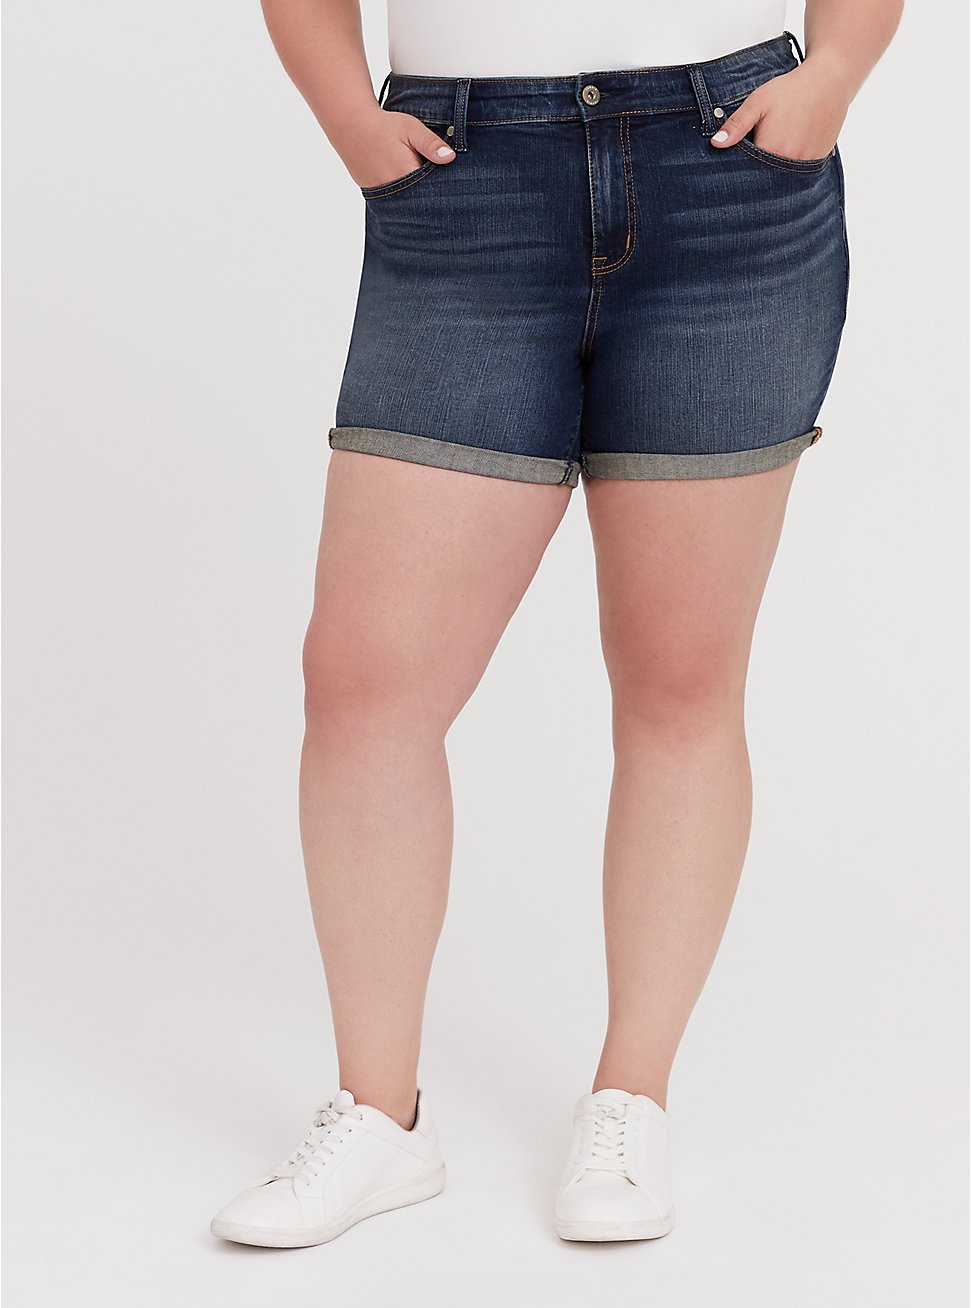 High Rise Mid Short - Vintage Stretch Dark Wash, HUSTLER, hi-res